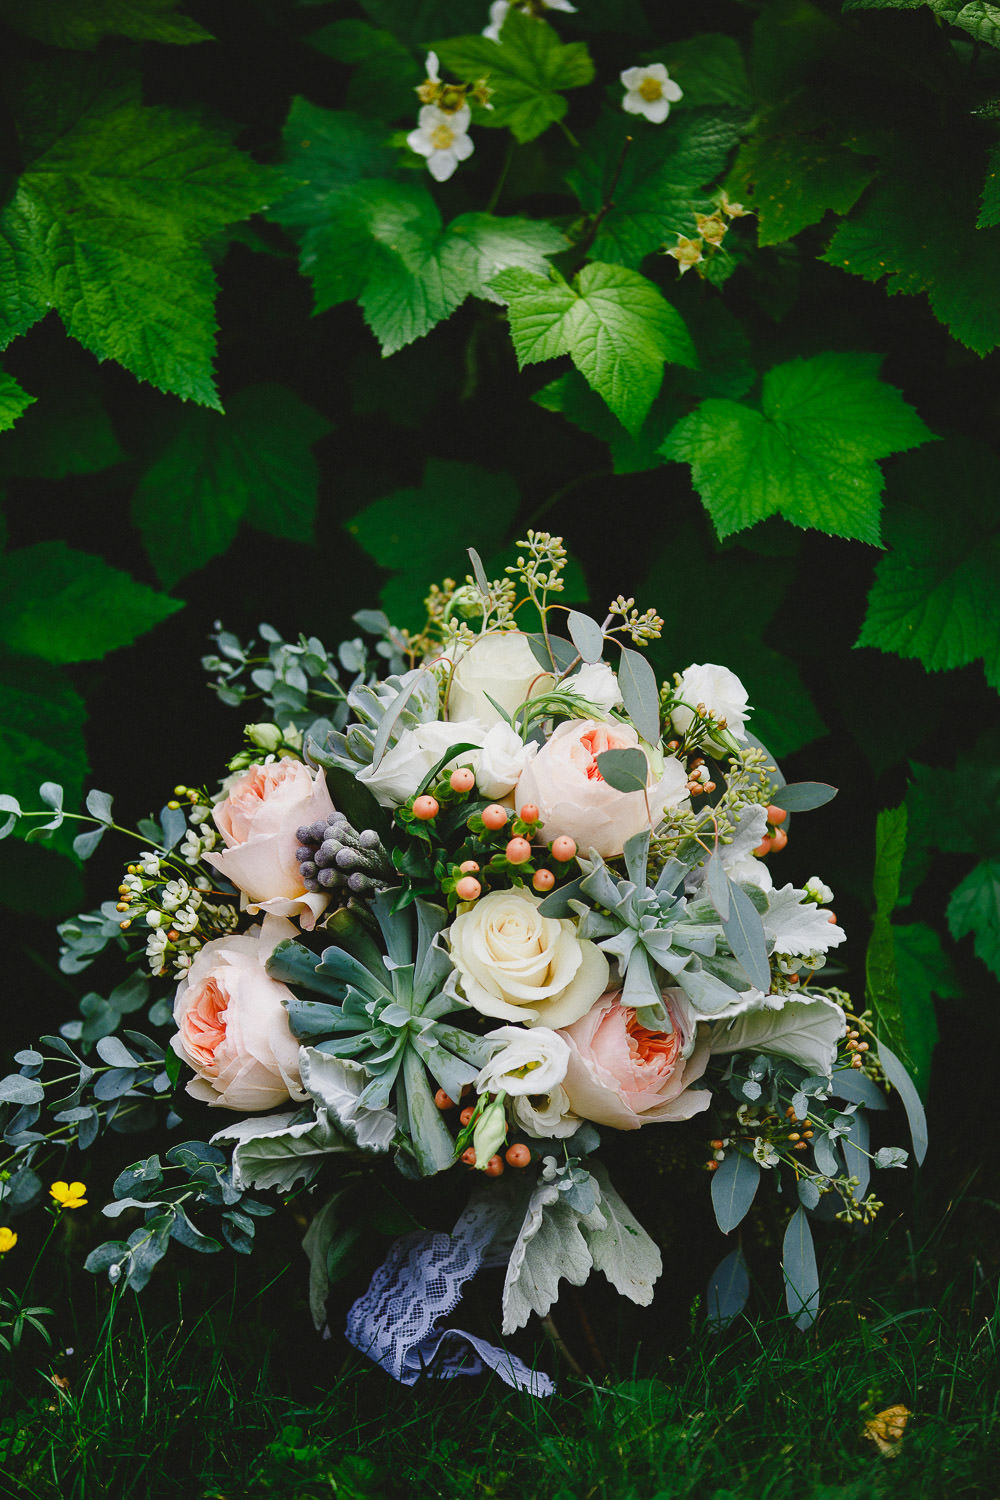 Bridal bouquet in nature